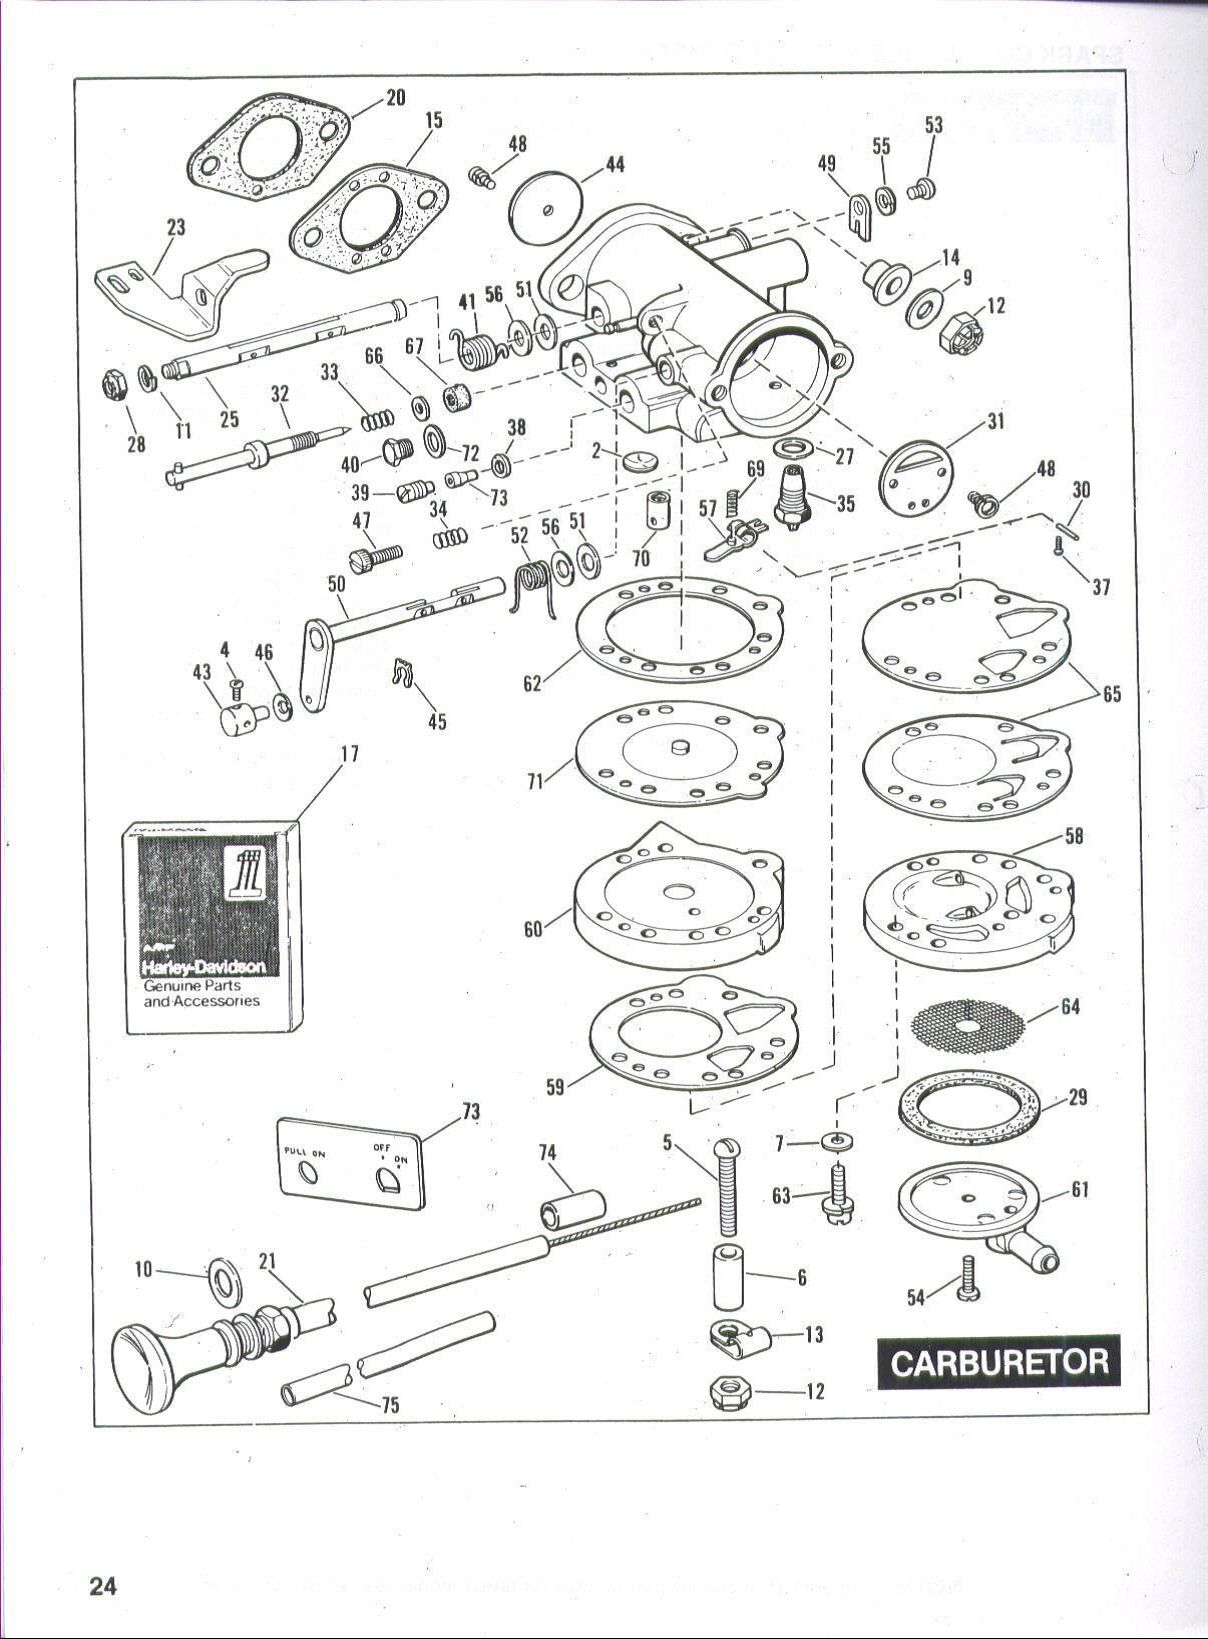 Club Car Wiring Diagrams Golf Cart Diagram Schematic 2000 Vintagegolfcartparts Com For 1996 Headlight